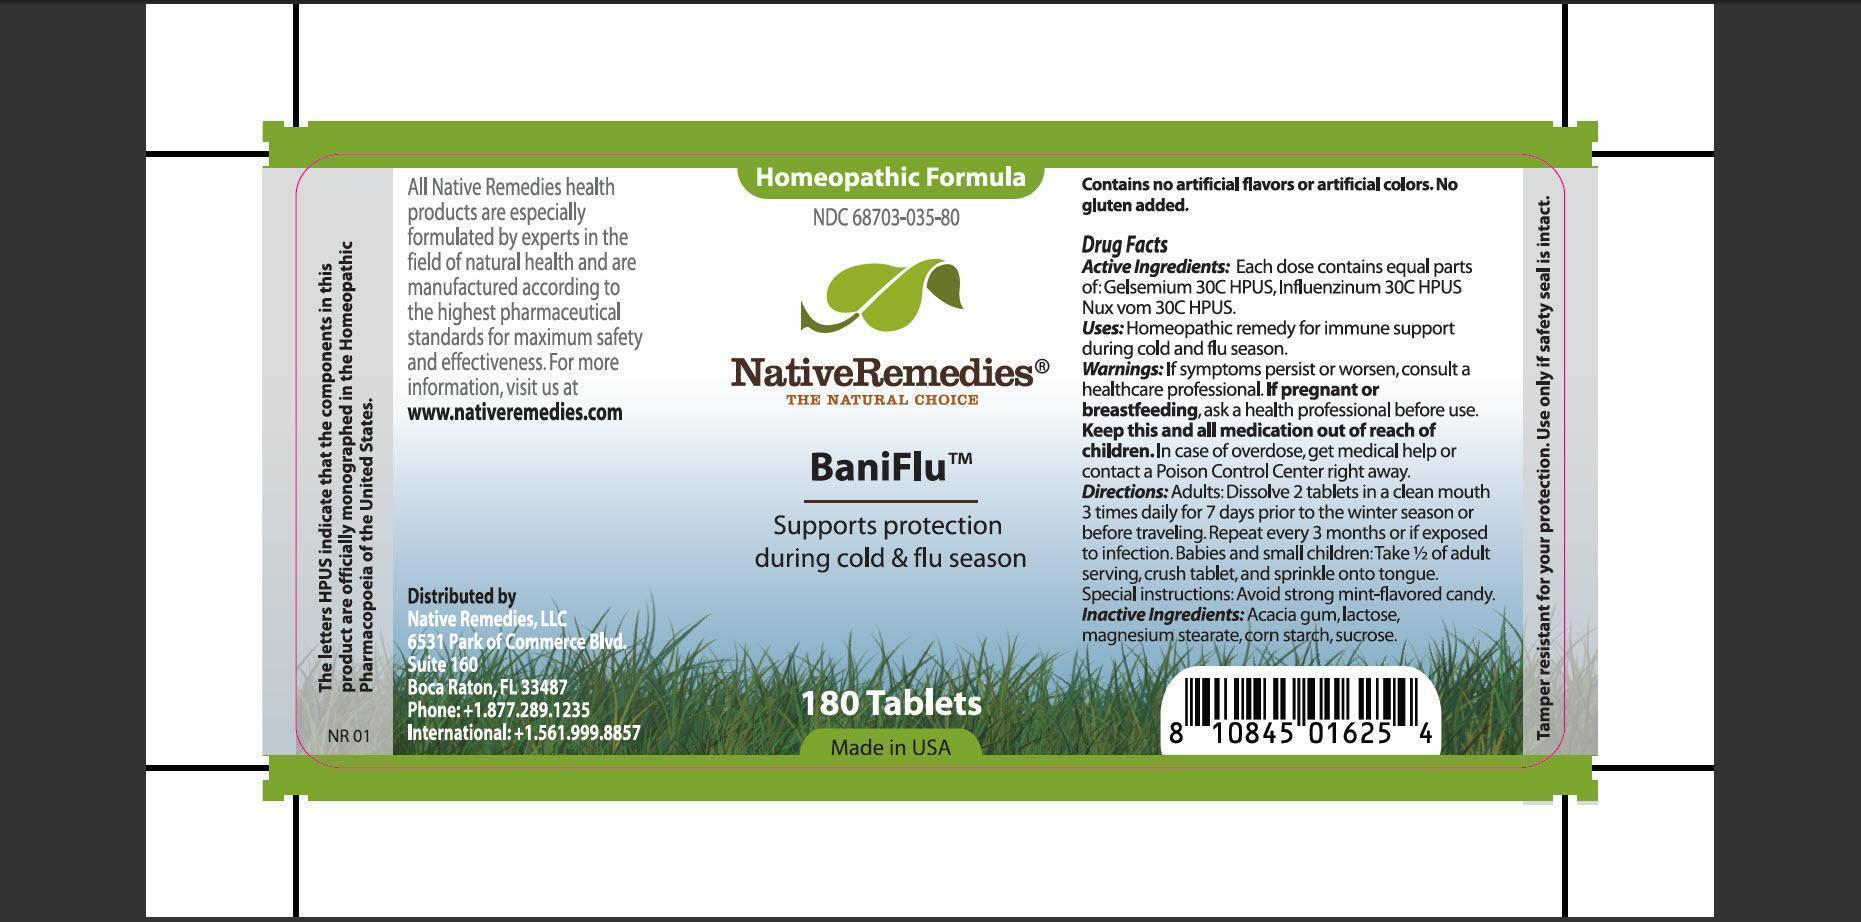 Baniflu (Gelsemium, Influenzinum, Nux Vom) Tablet [Native Remedies, Llc]